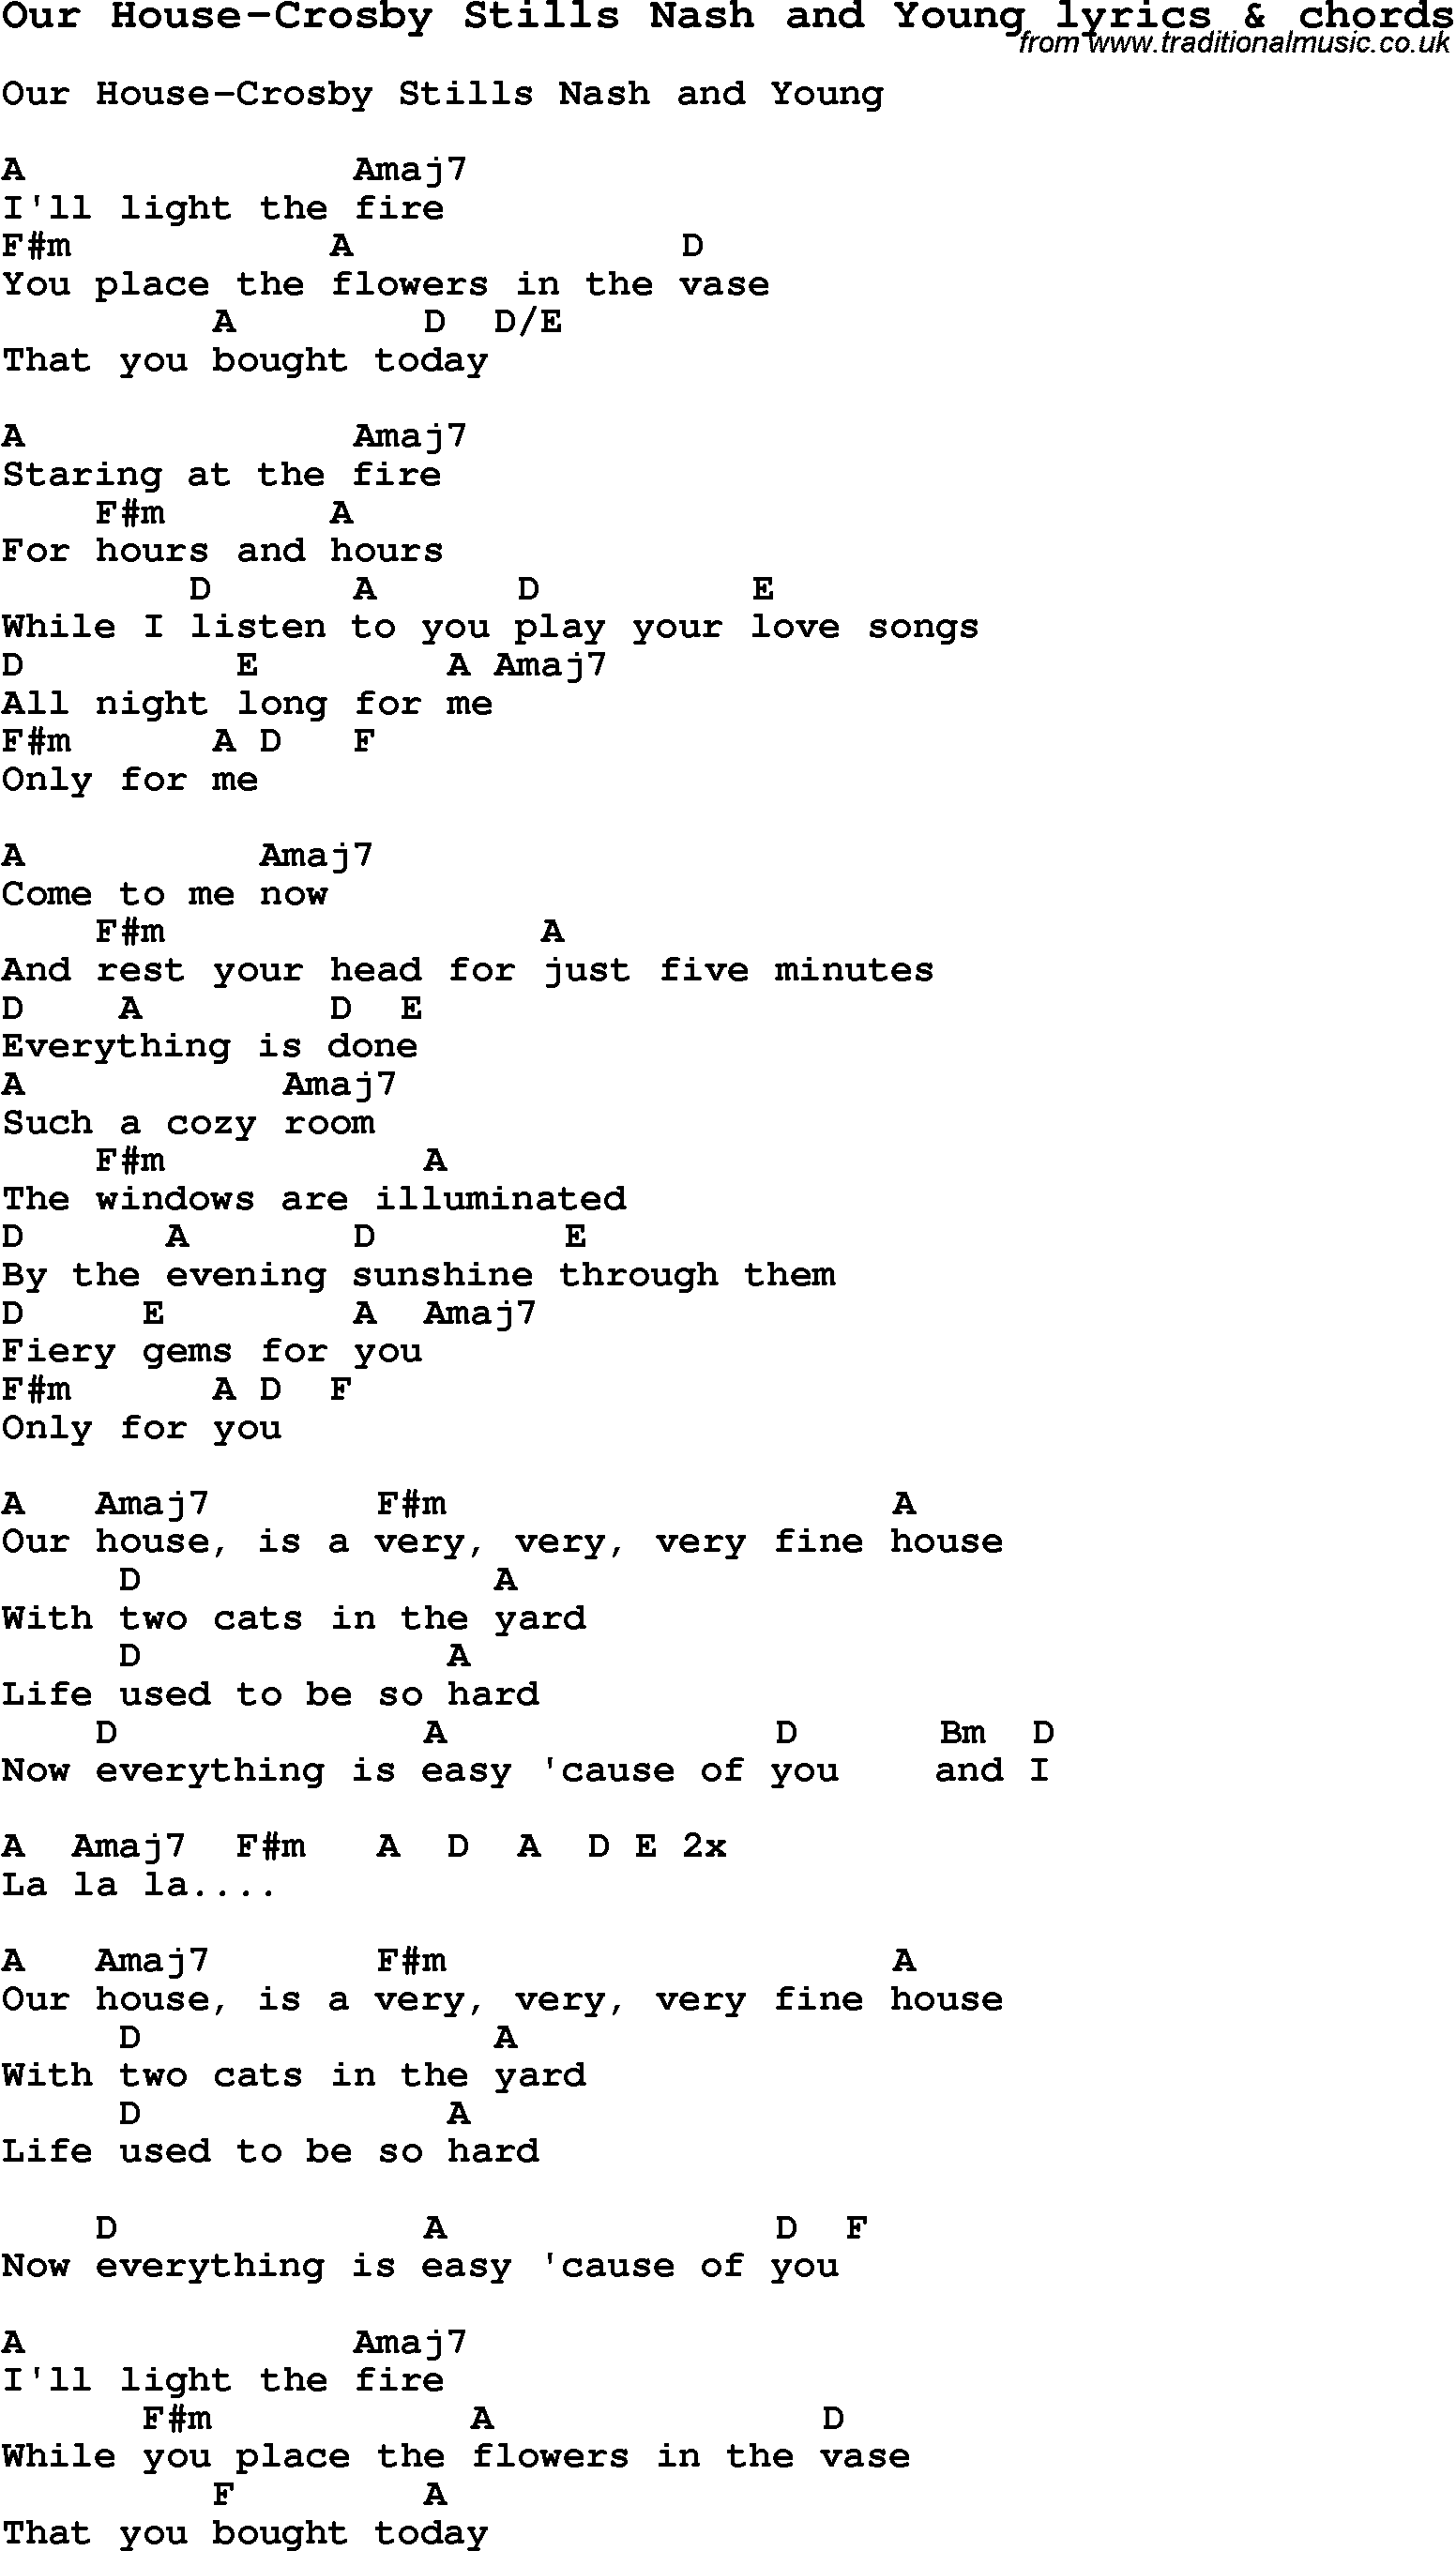 Love song lyrics forour house crosby stills nash and young with love song lyrics forour house crosby stills nash and young with chords hexwebz Image collections